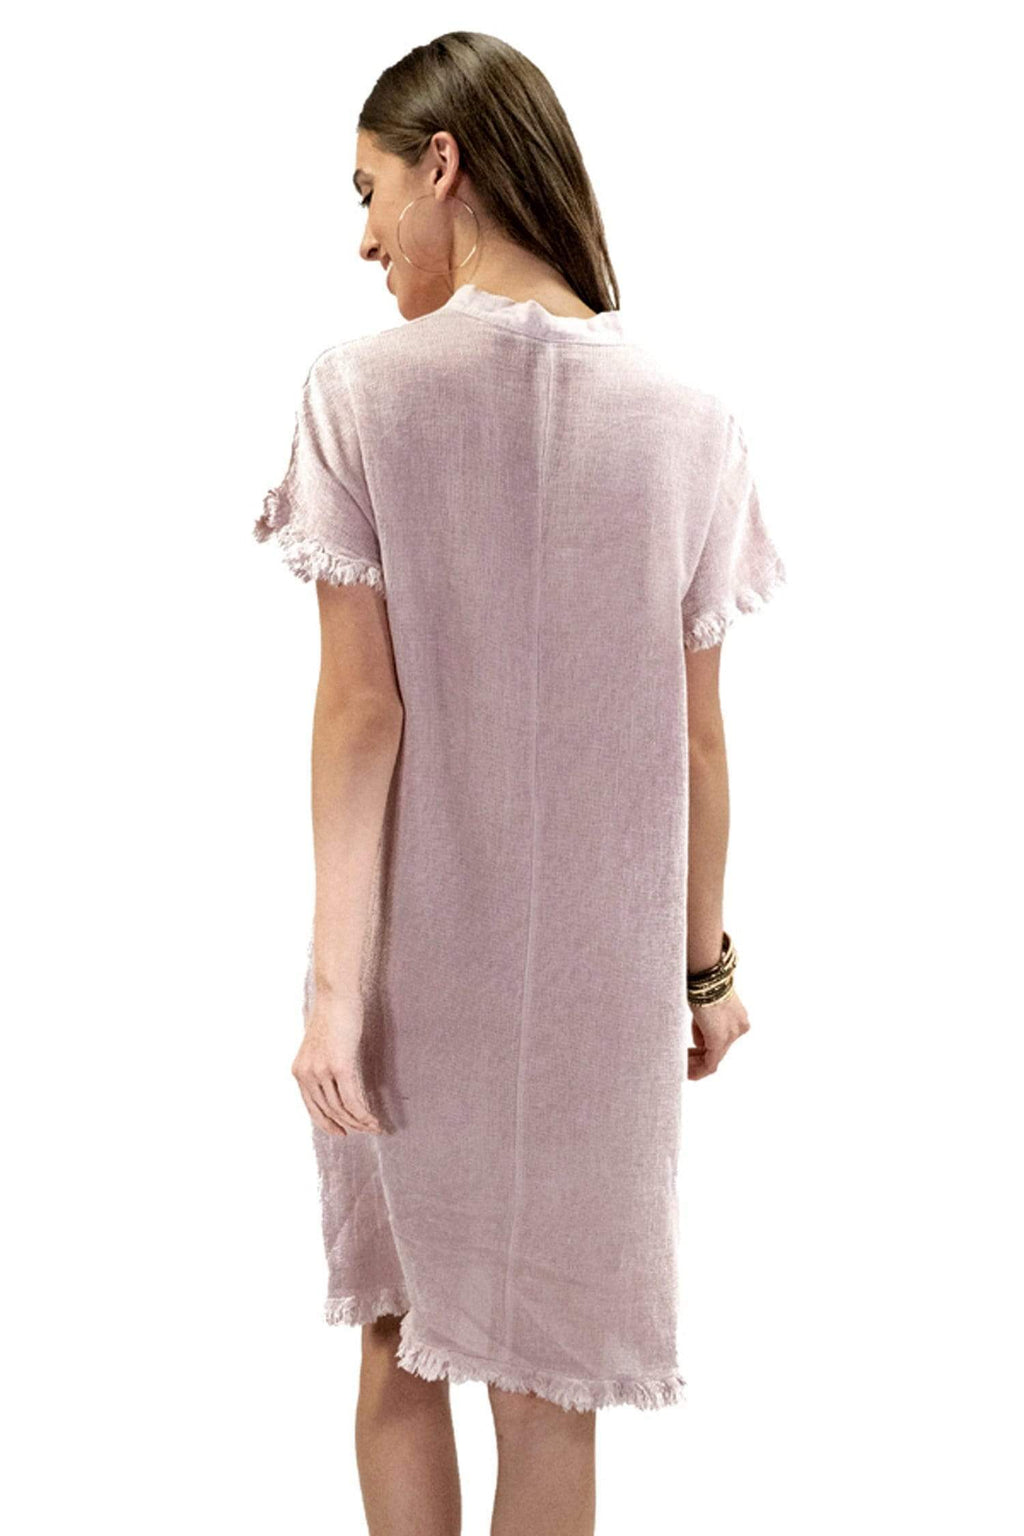 shop-sofia Tania Dress Sofia Collections Italian Silk Linen Satin